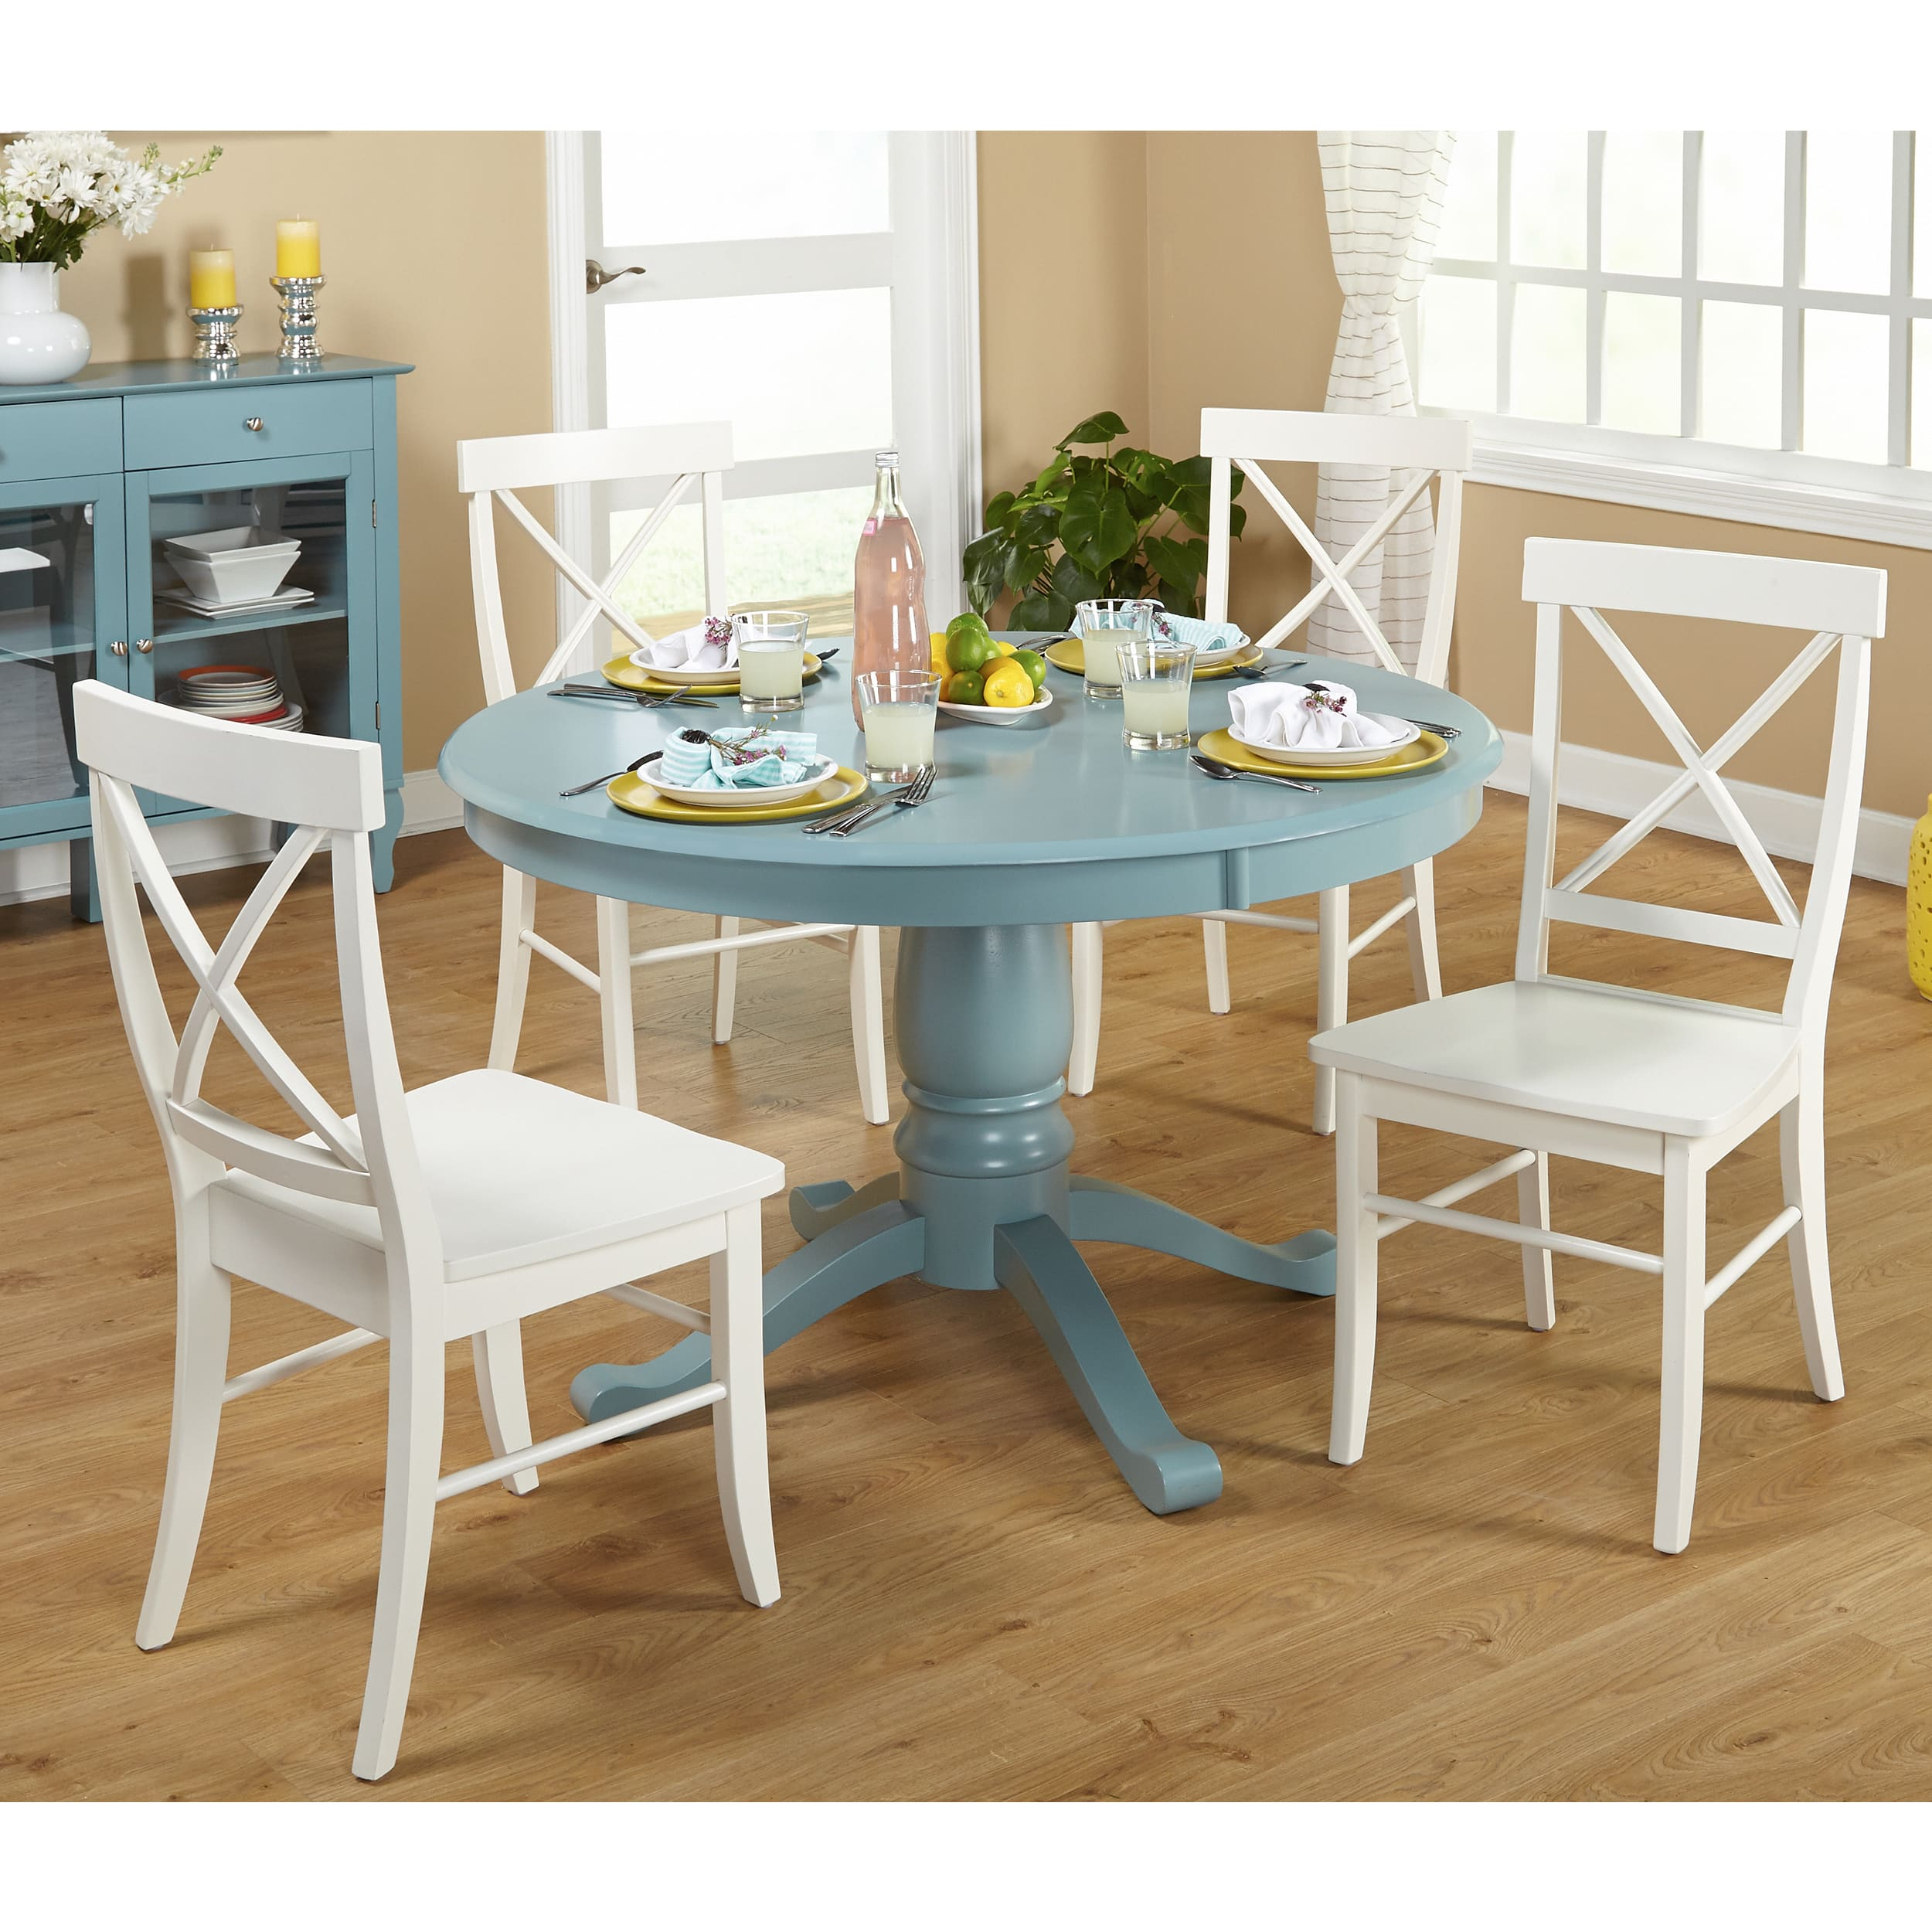 Country Kitchen Dining Set: Buy Kitchen & Dining Room Sets Online At Overstock